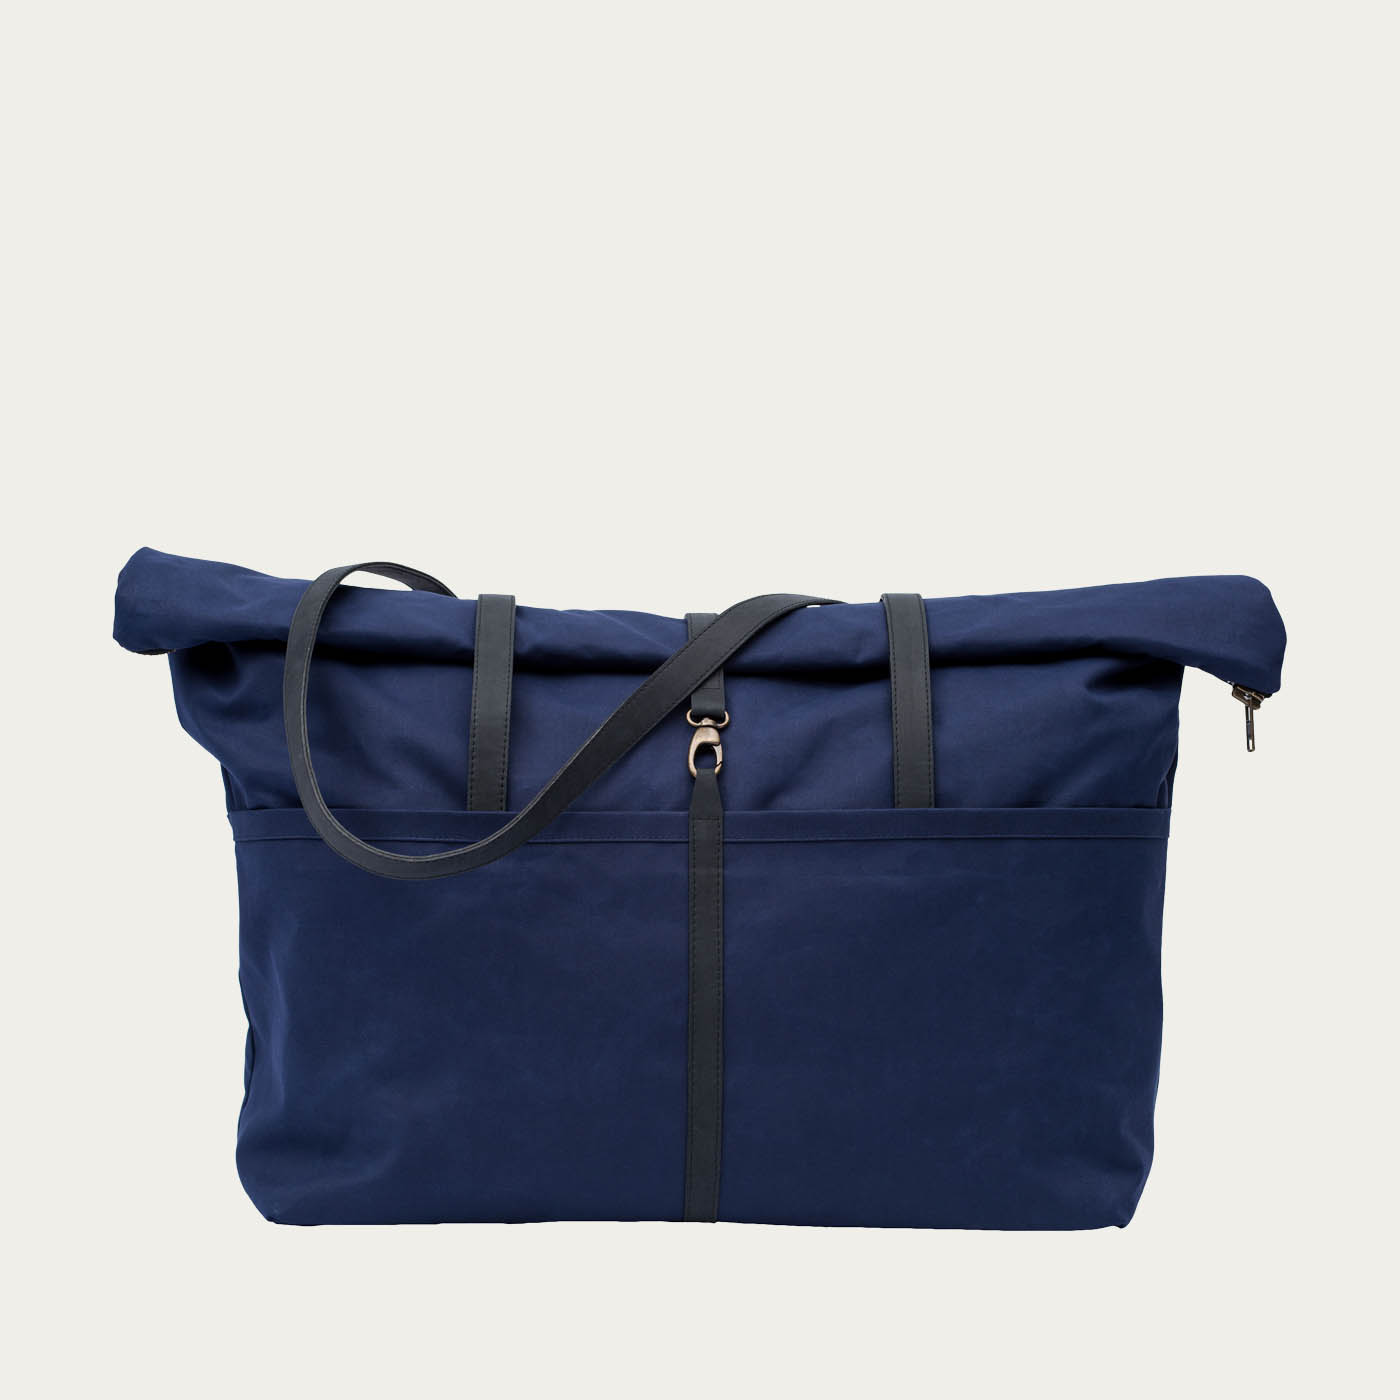 Navy Charcoal Weekender  | Bombinate